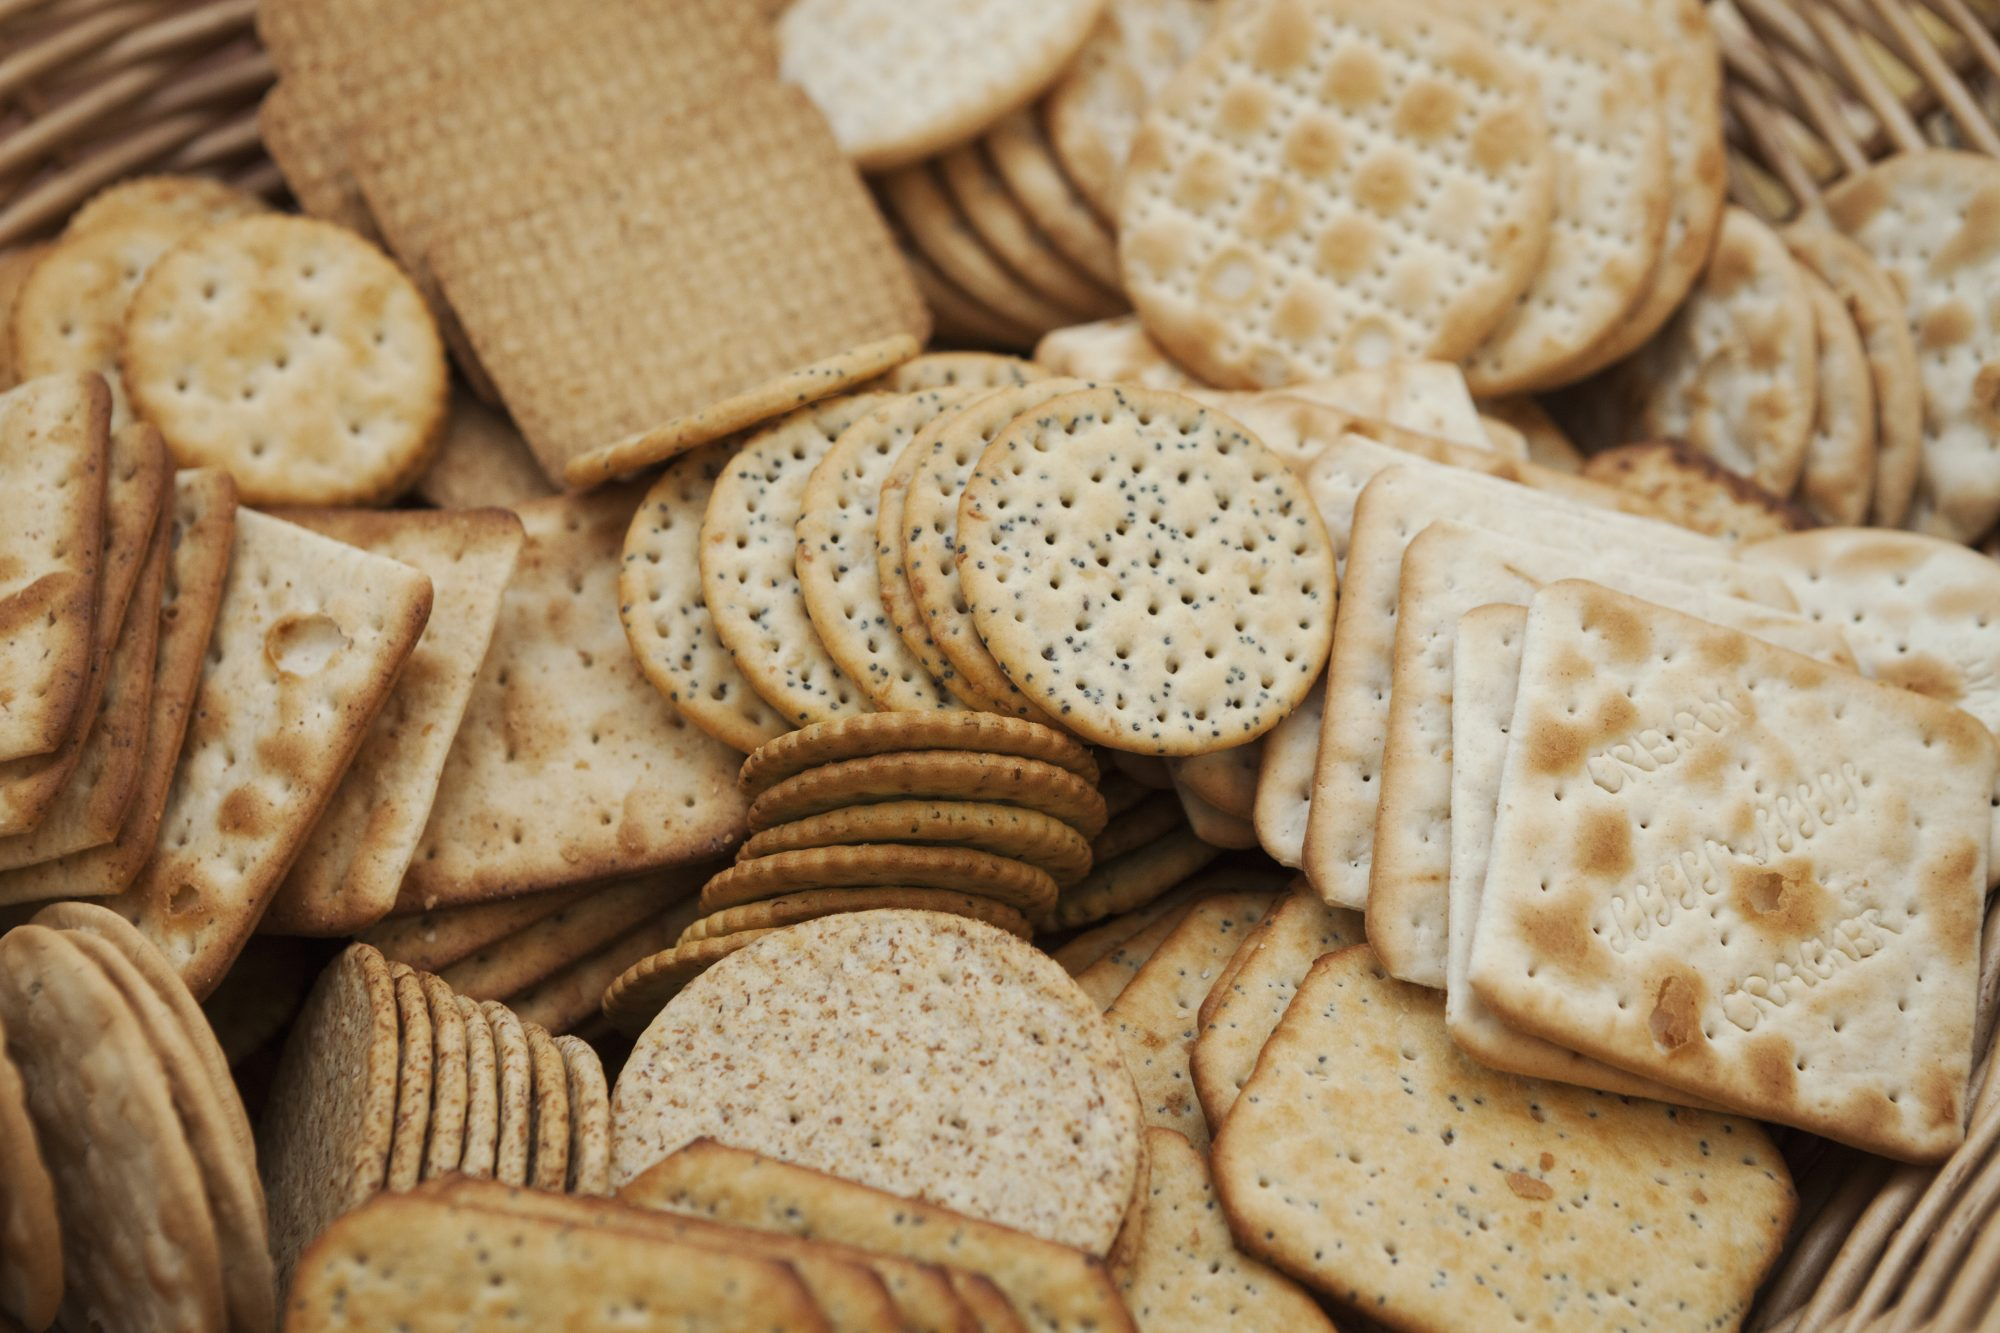 Crackers Getty 2/7/20